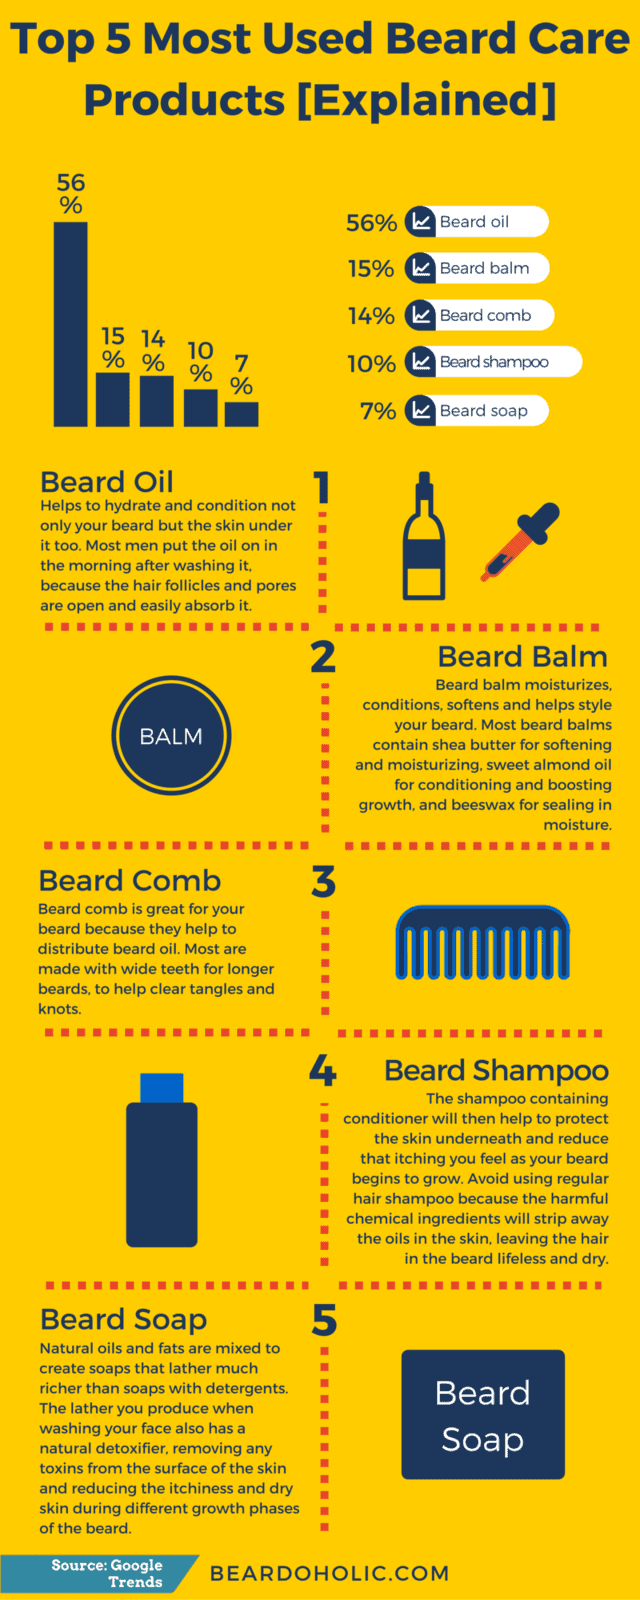 Top 5 Most Used Beard Care Products Infographic